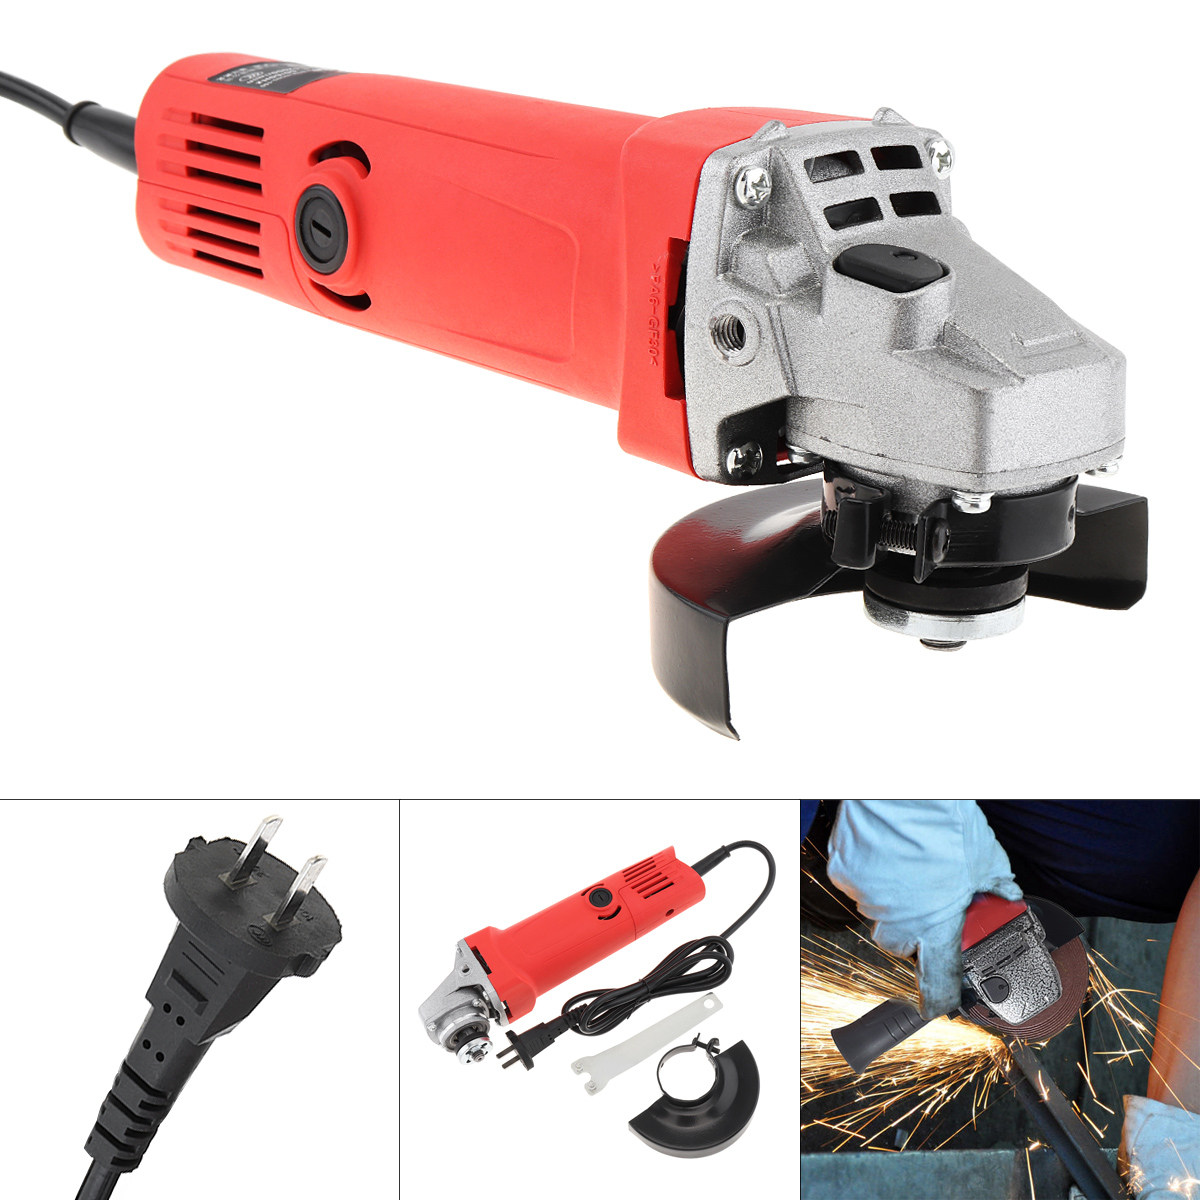 220V 700W 12000rpm Multifunction Electric Angle Grinder With Protective Cover Support 100mm Polishing Disc For Household